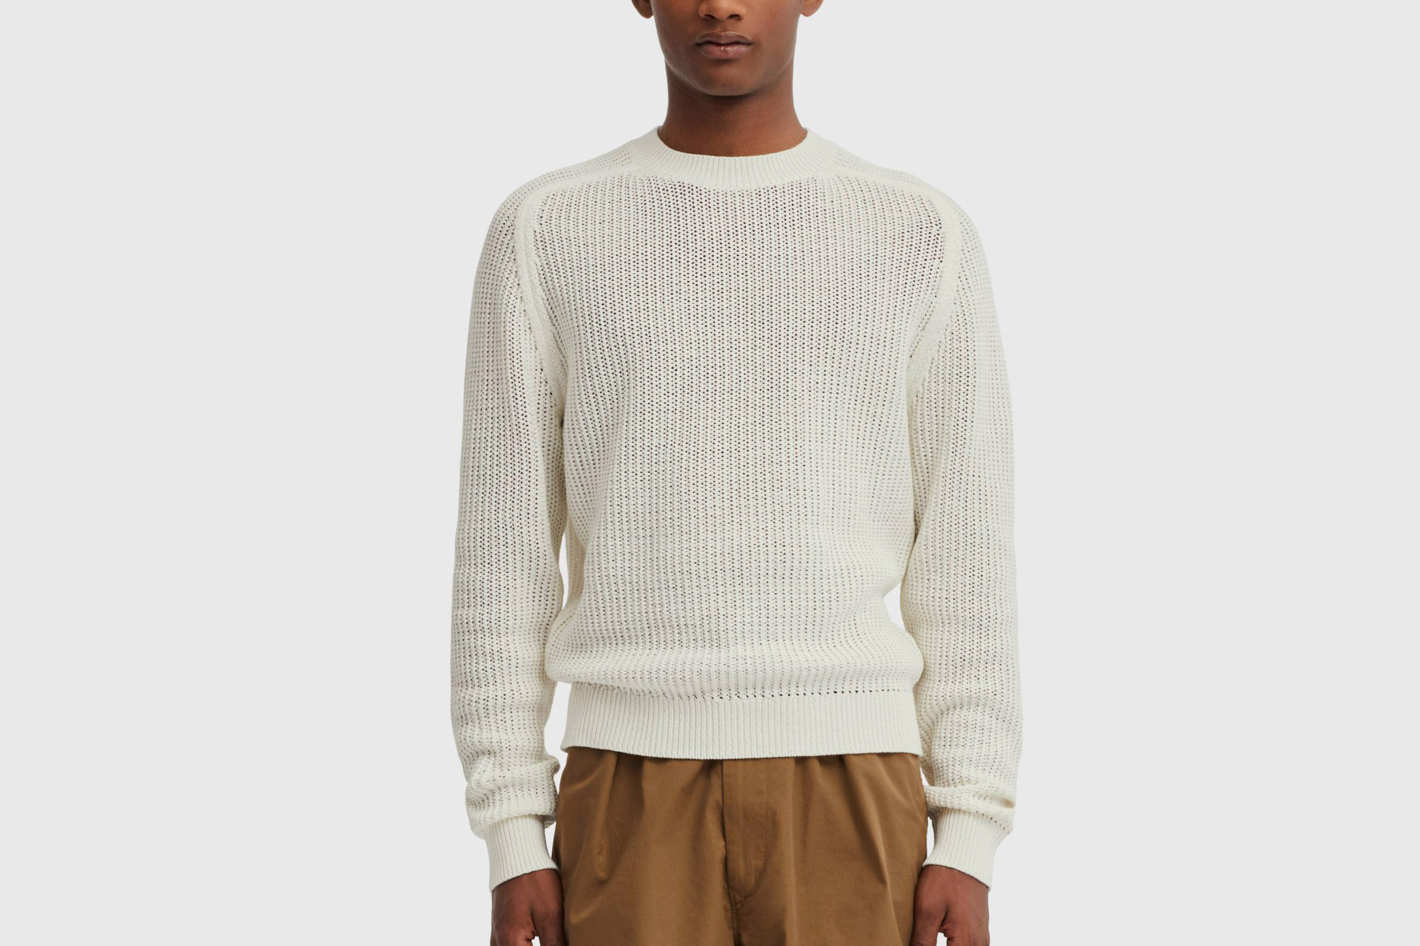 Men U Cotton Crew Neck Long-Sleeve Sweater